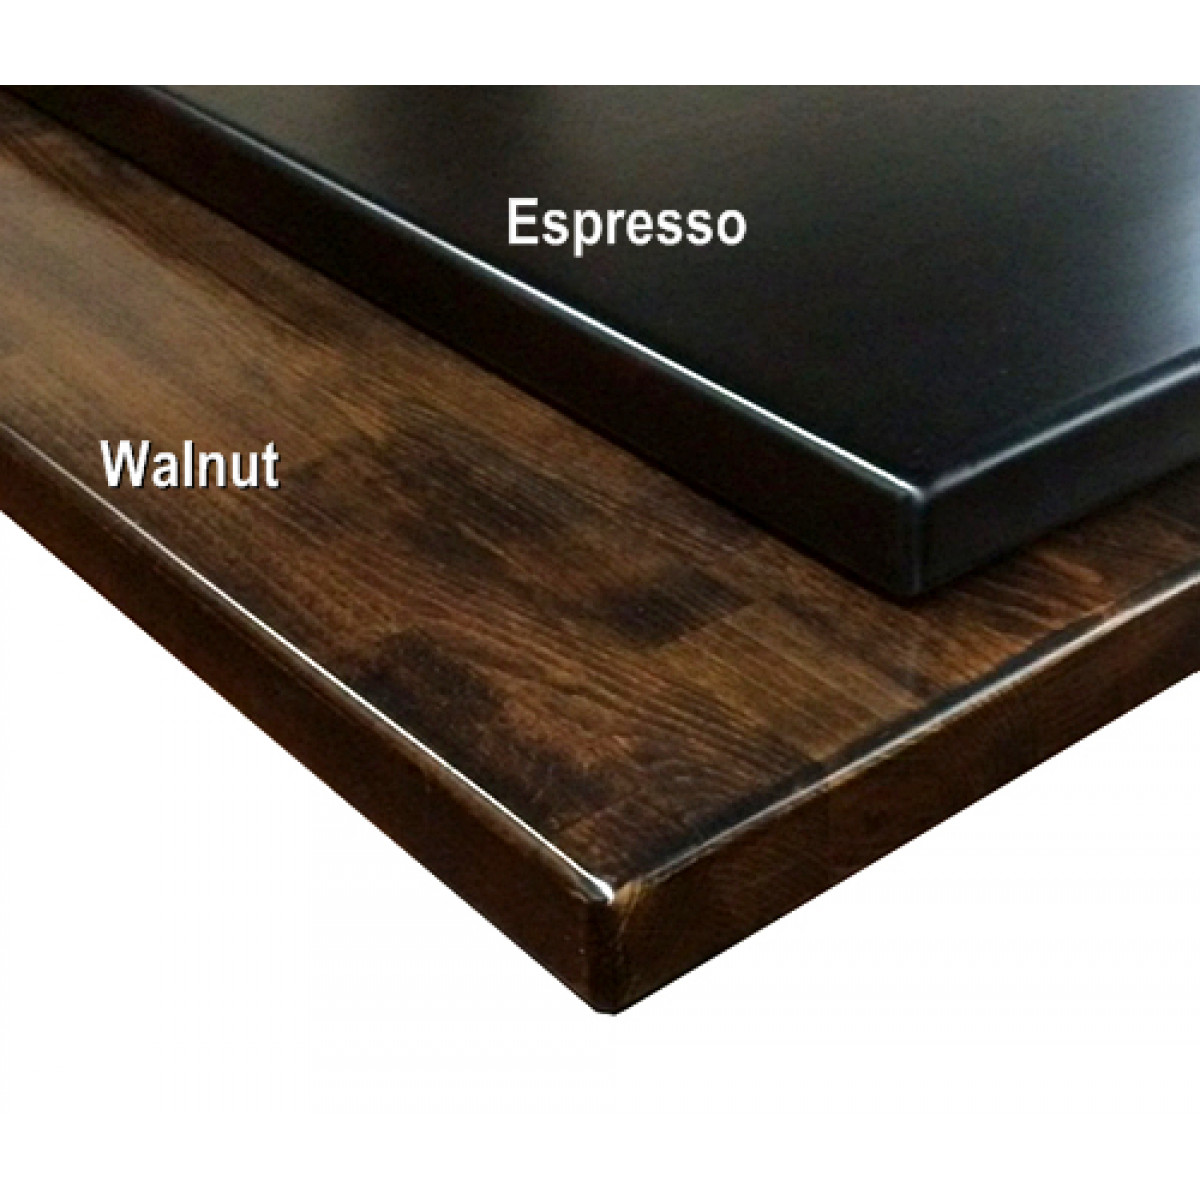 espresso end table architecture dark esspresso round coffee wal and butcherblock beechwood top with ship butcher block beech wood lamp sets modern side drawer quick tall accent